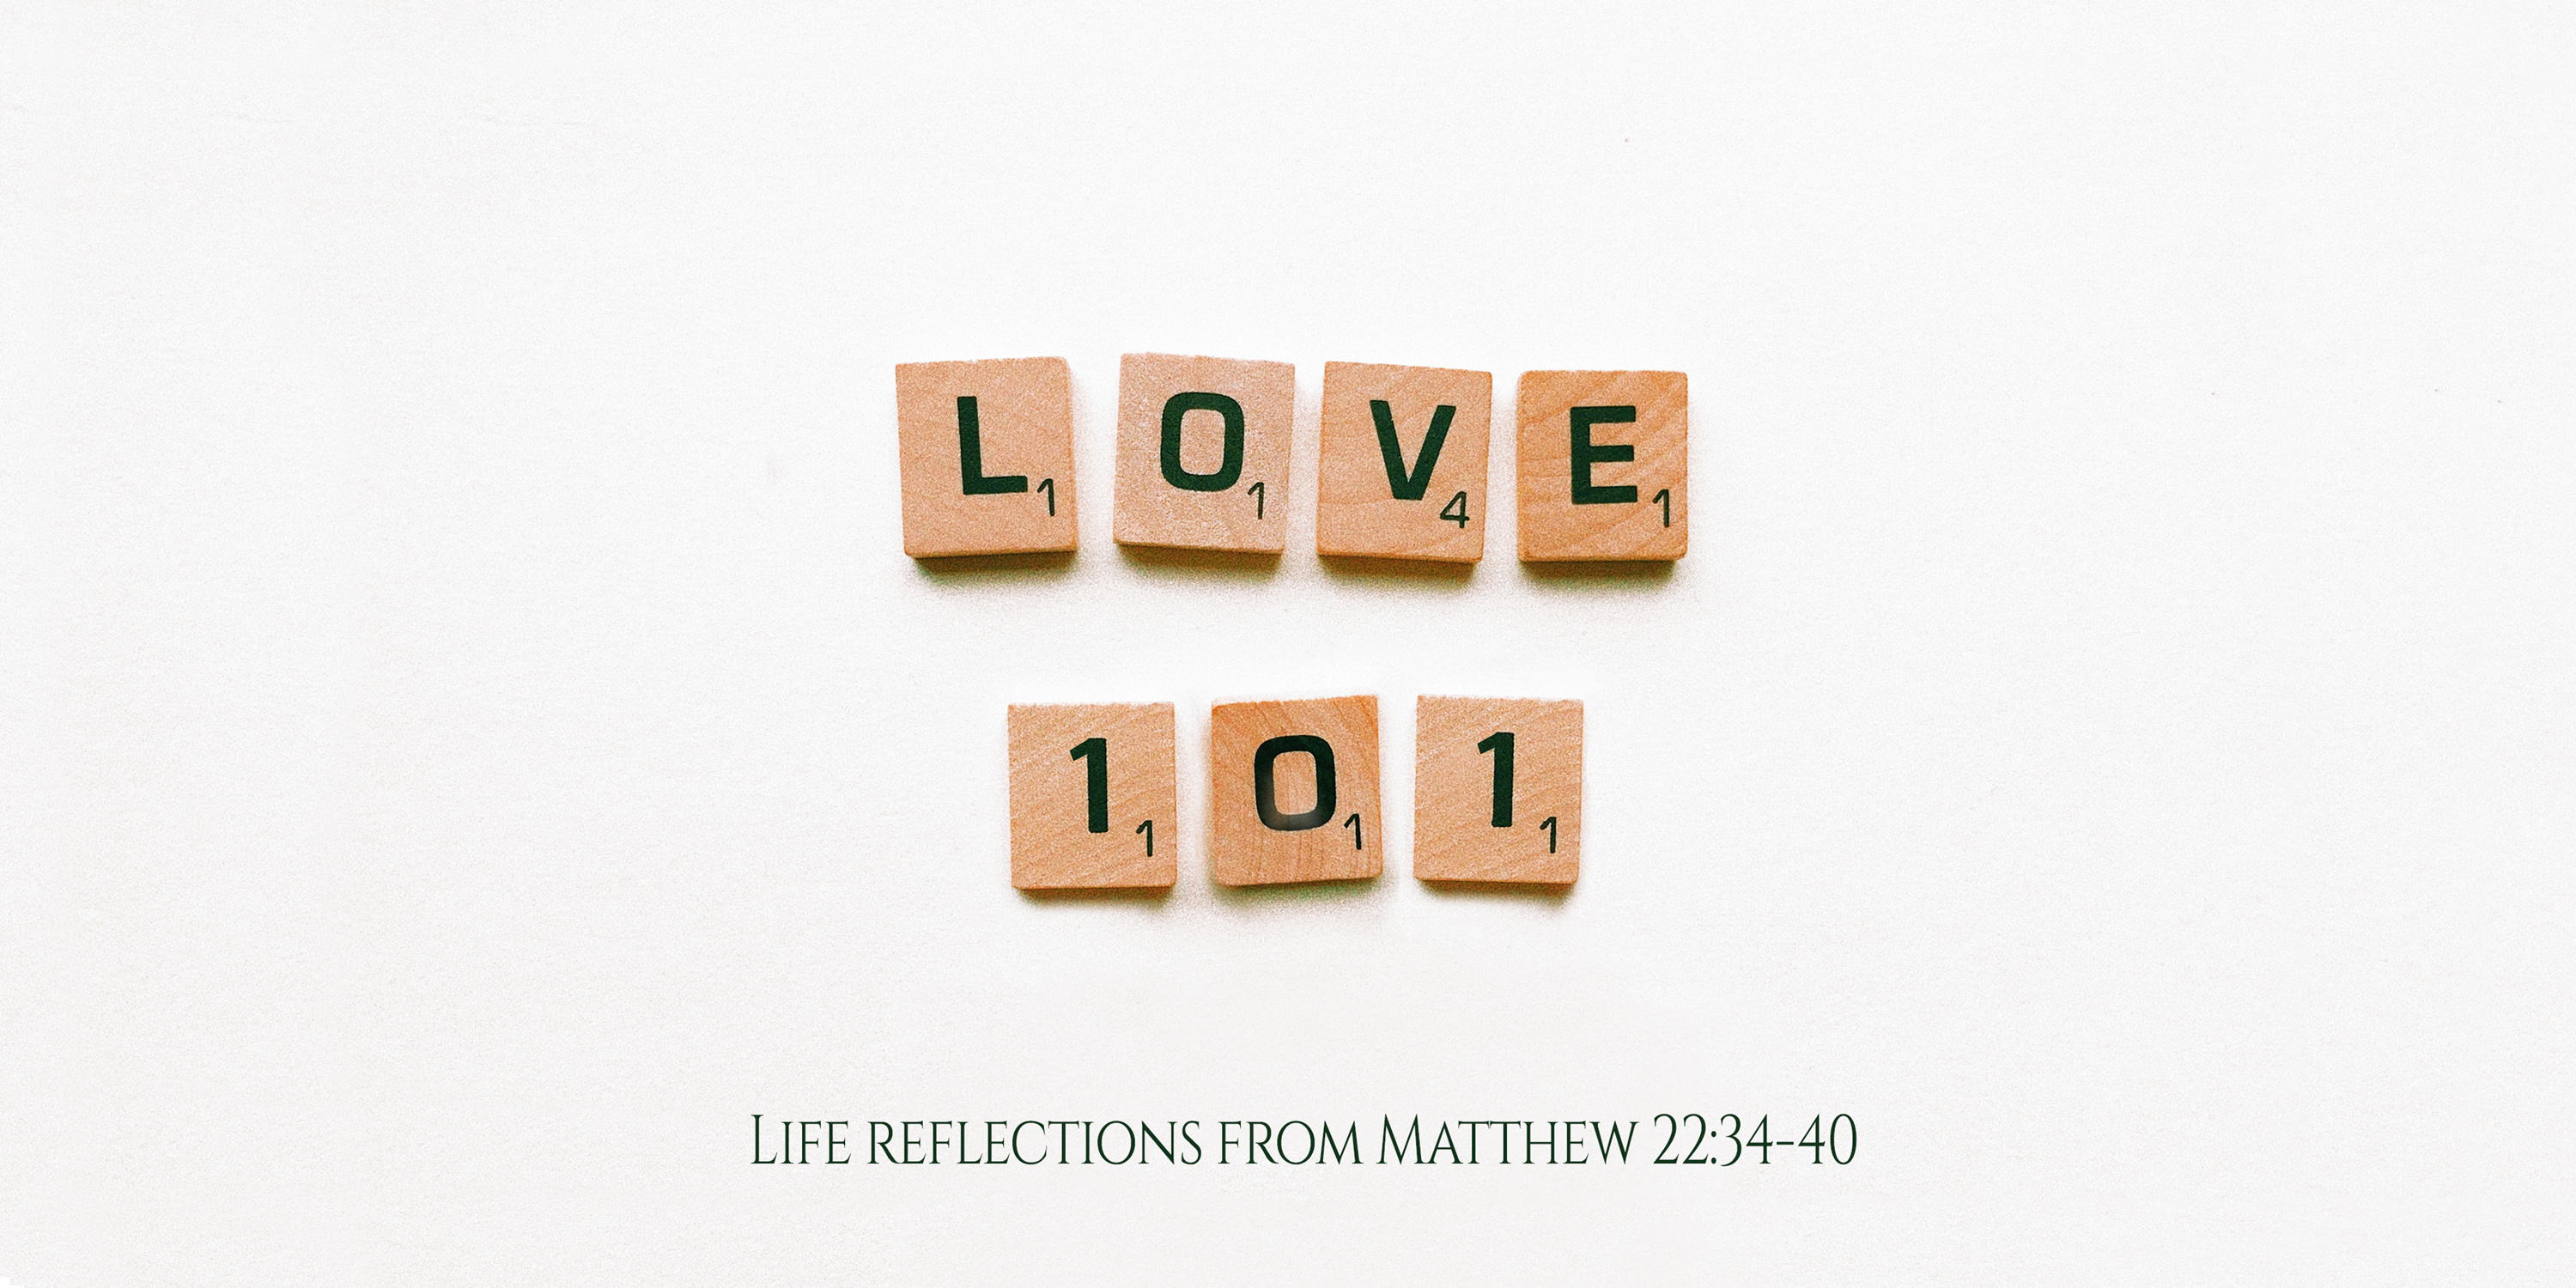 Love : 101 – Reflection